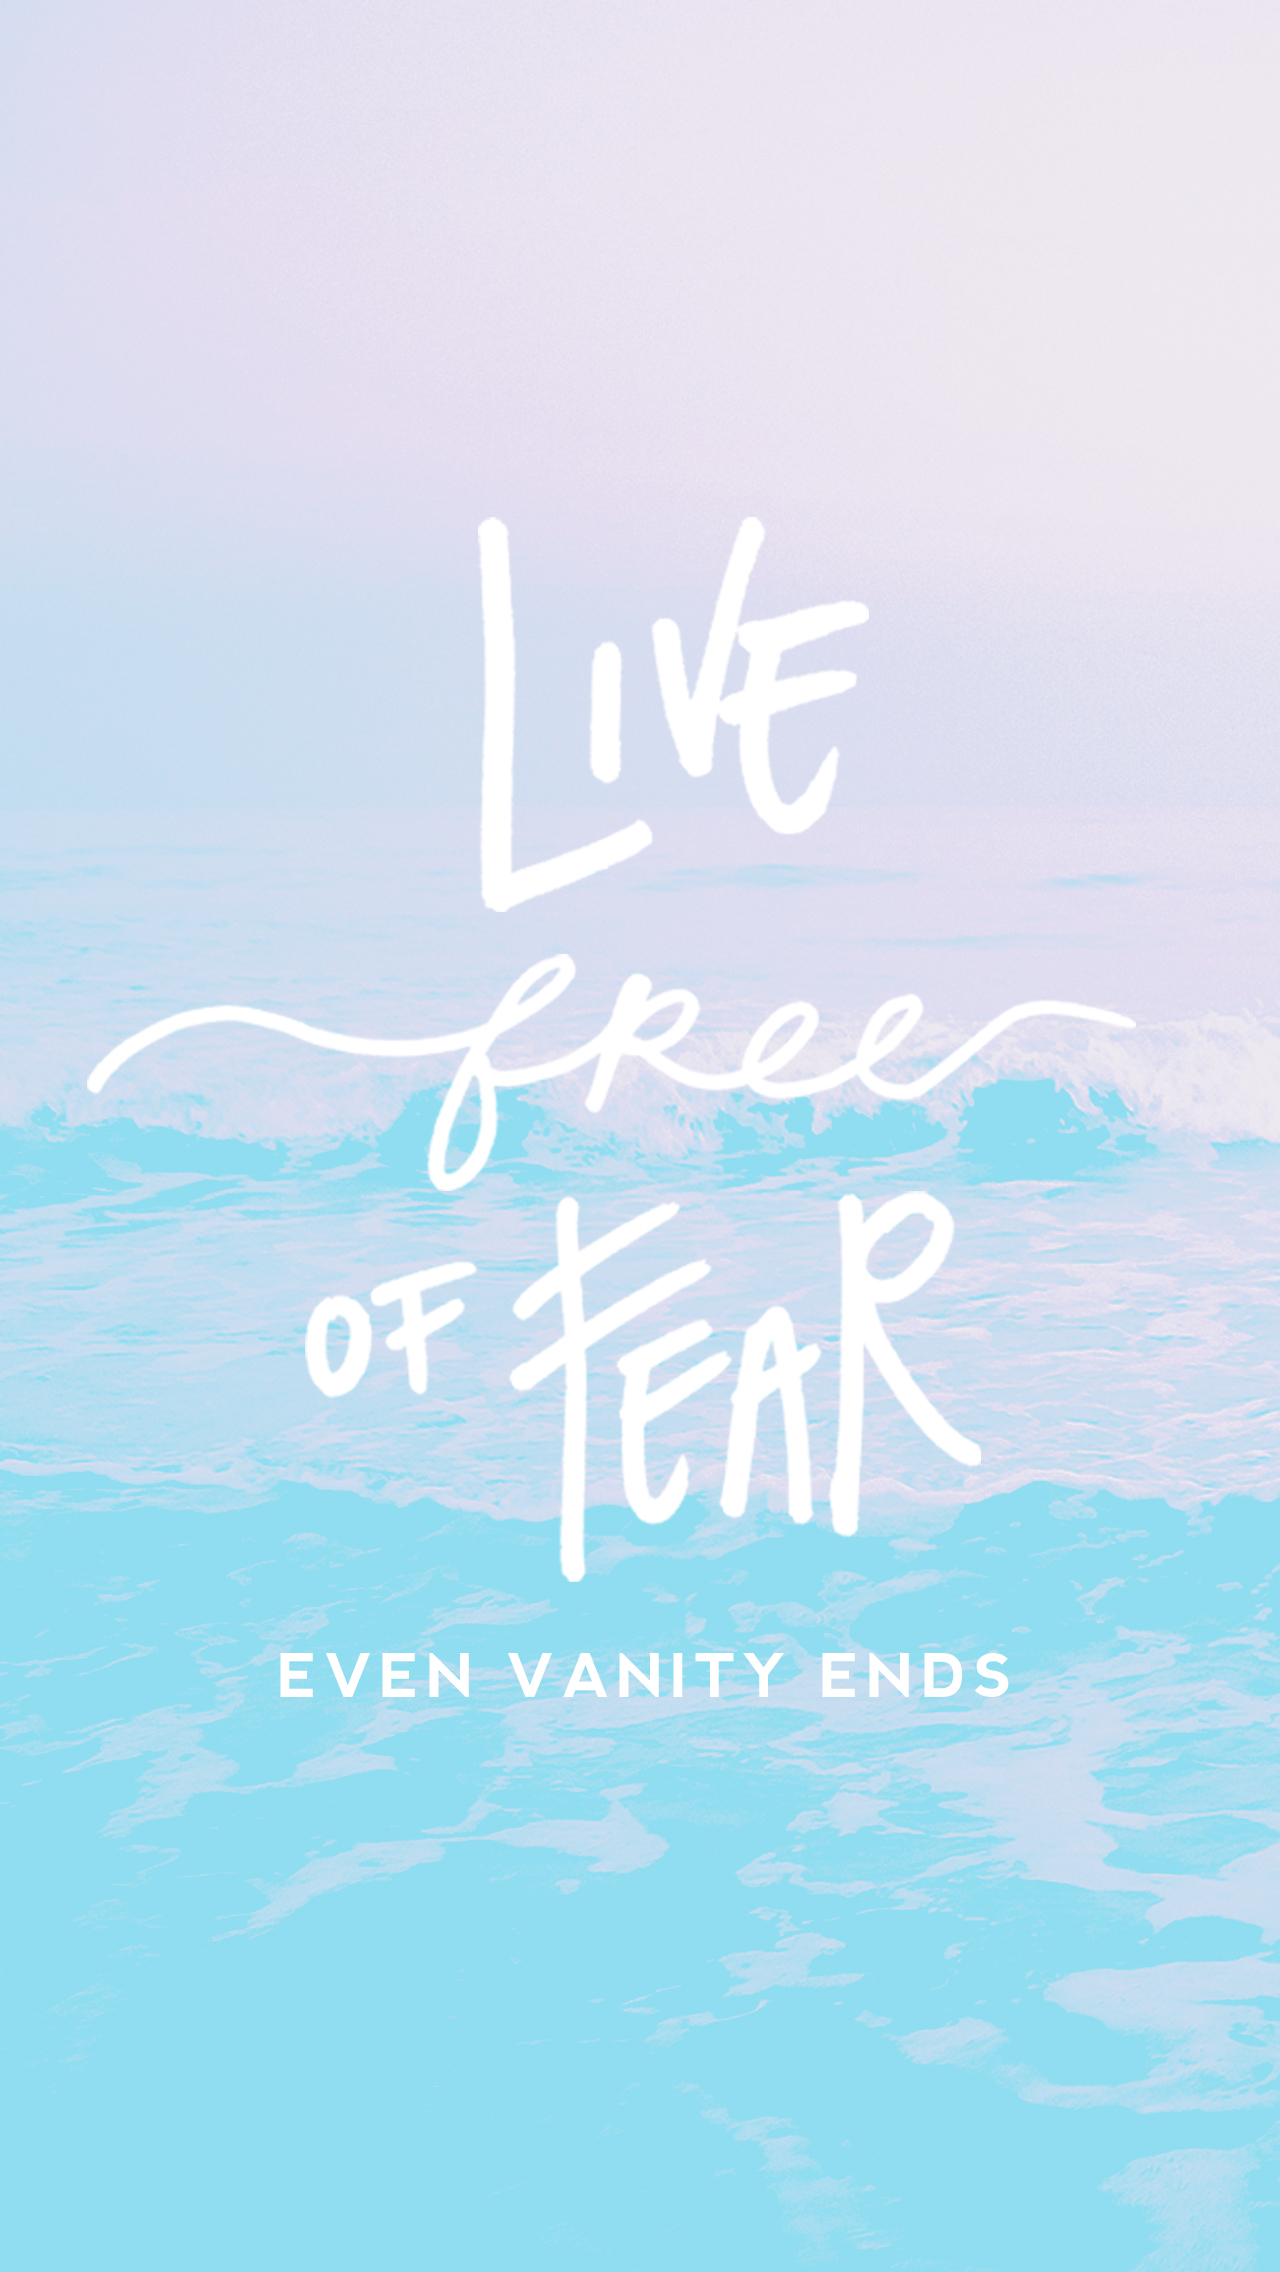 even-vanity-ends-live-free-of-fear-phone-wallpaper-blue.jpg